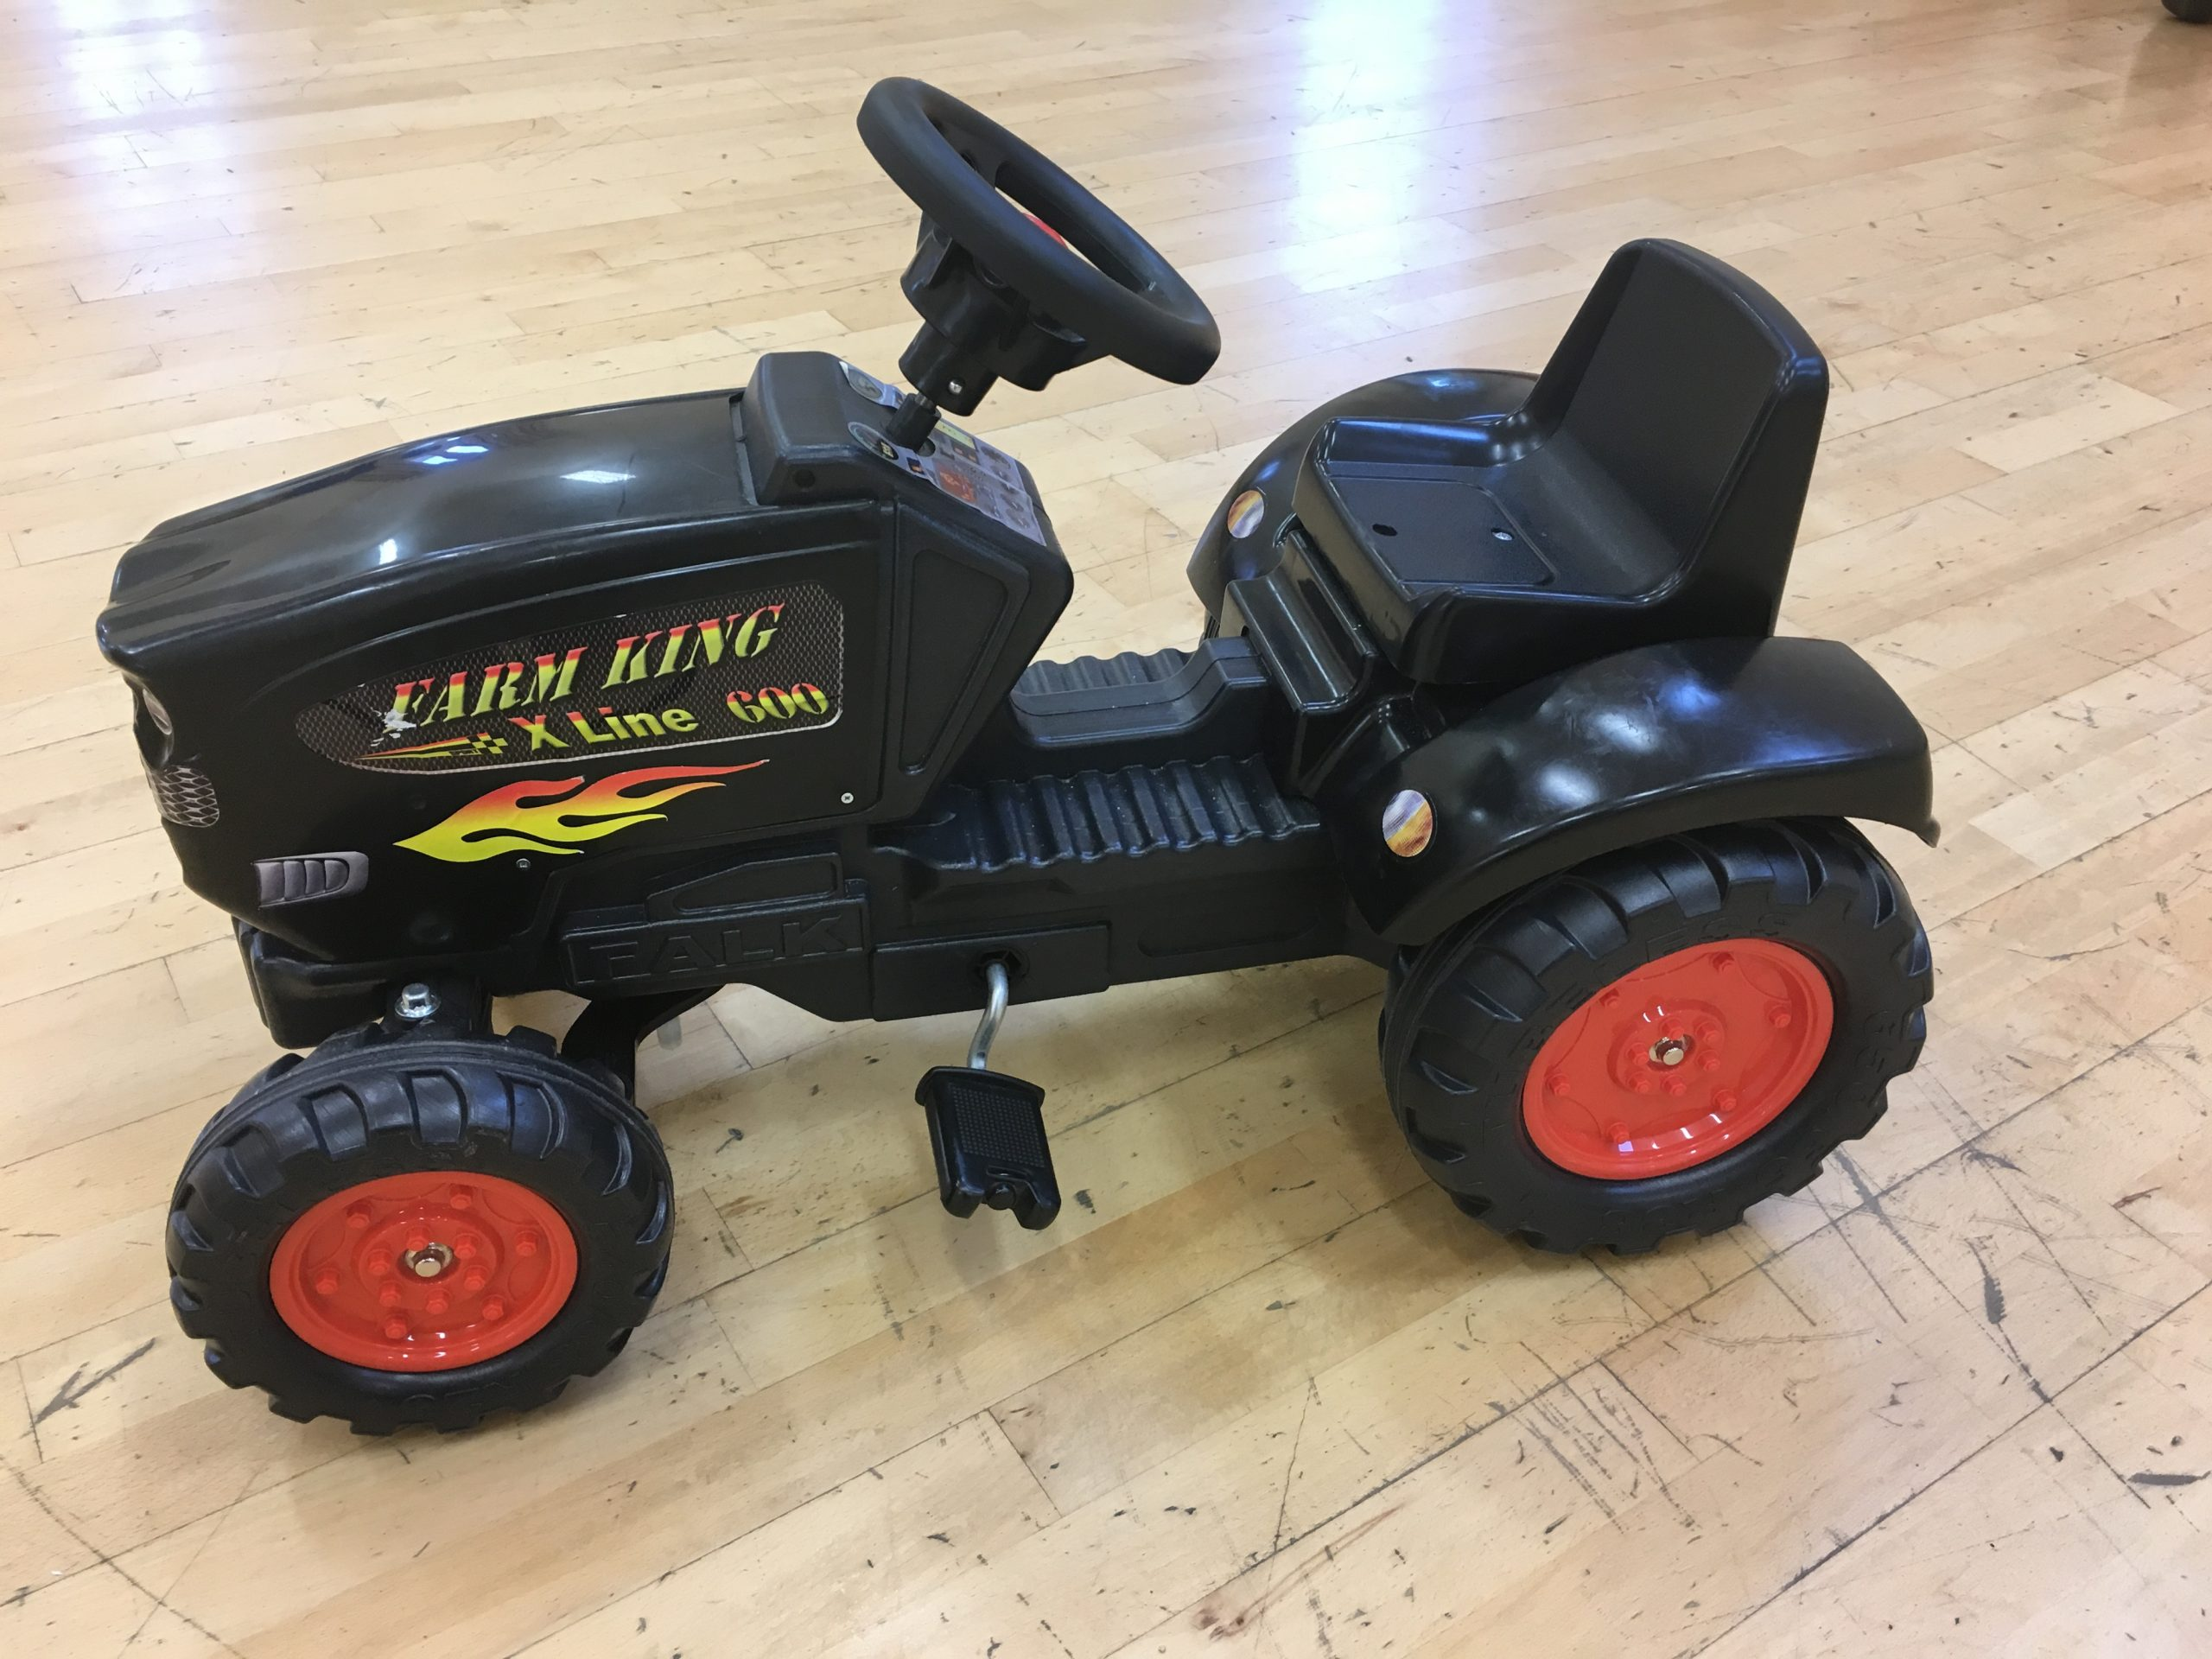 Black tractor ride on toy with Farm King logo